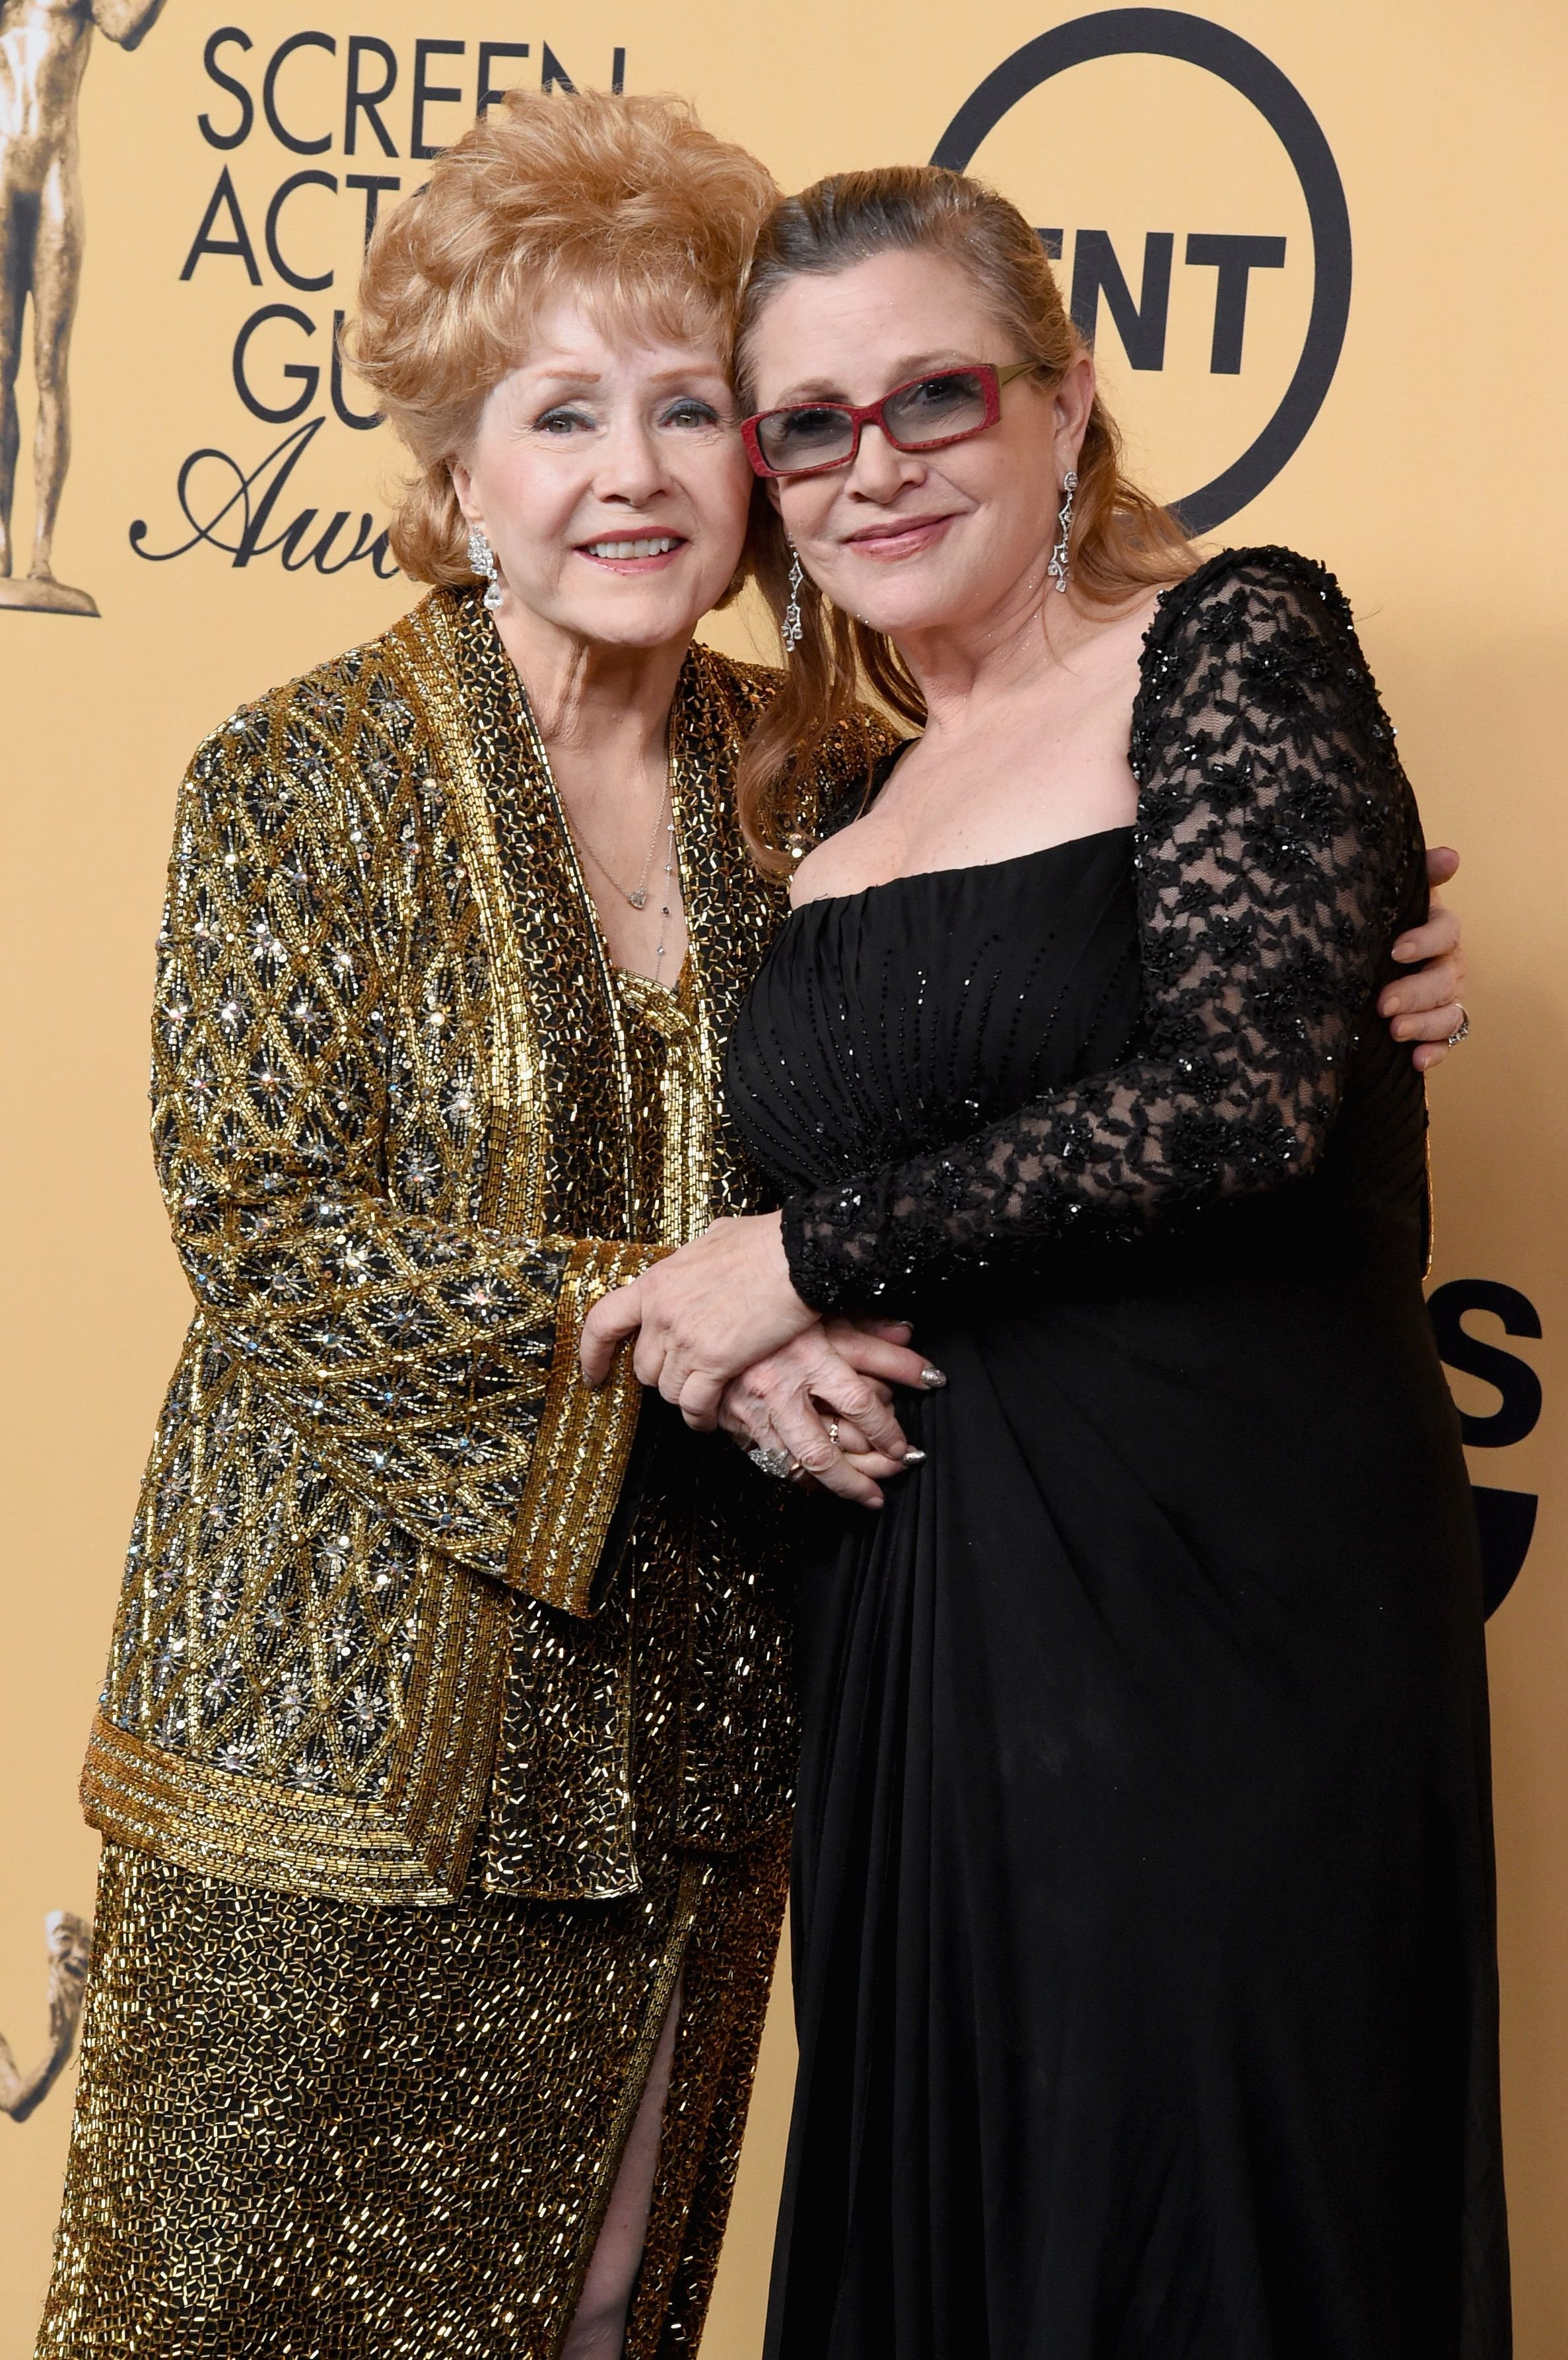 Honoree Debbie Reynolds and actress Carrie Fisher pose in the press room at the 21st Annual Screen Actors Guild Awards at The Shrine Auditorium on January 25, 2015 | Photo: Getty Images